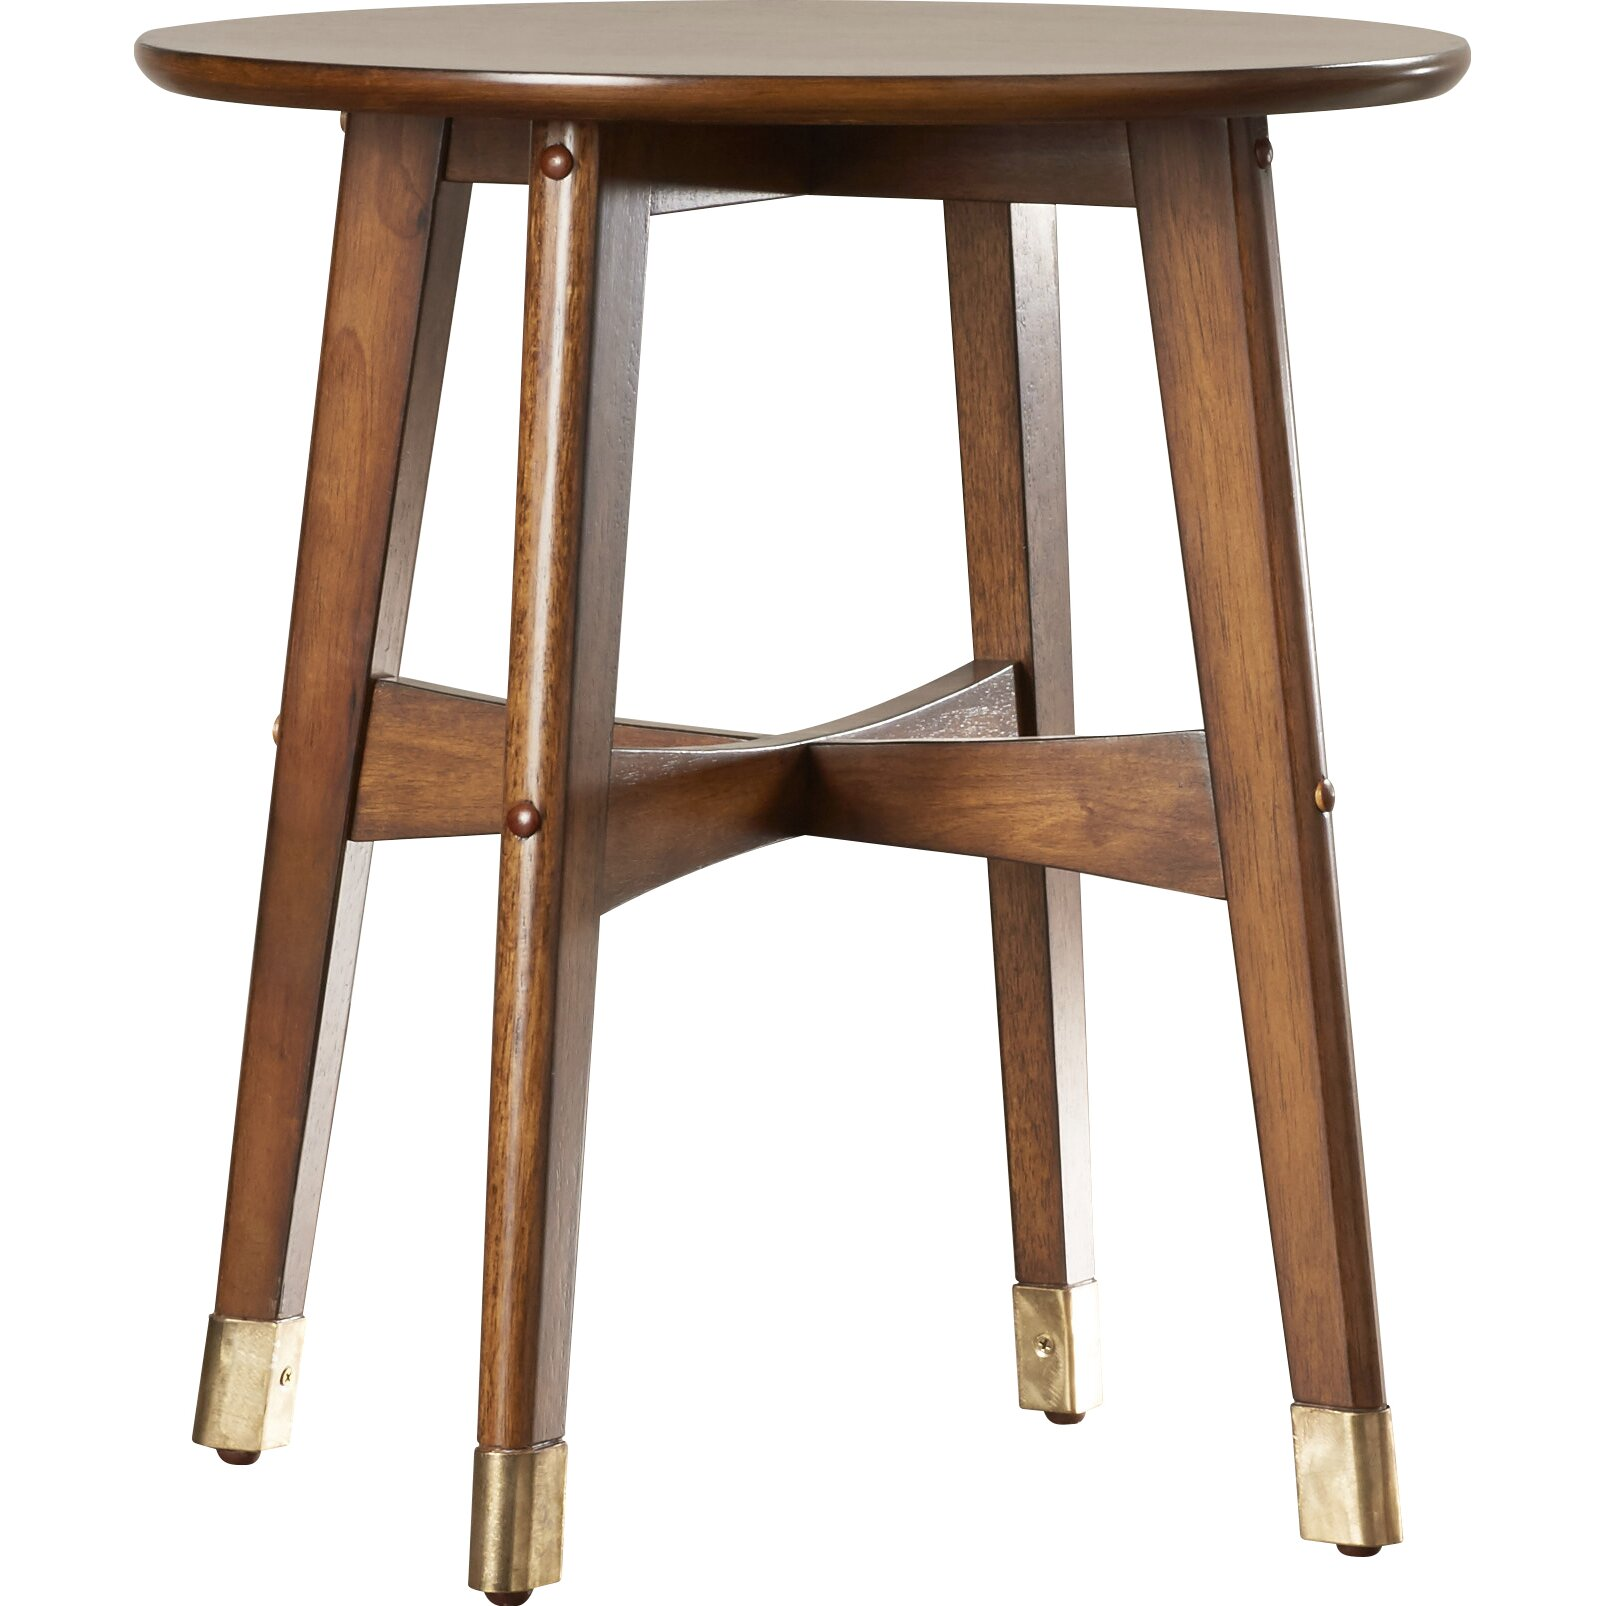 Langley street rosarito end table reviews wayfair for End tables for sale near me